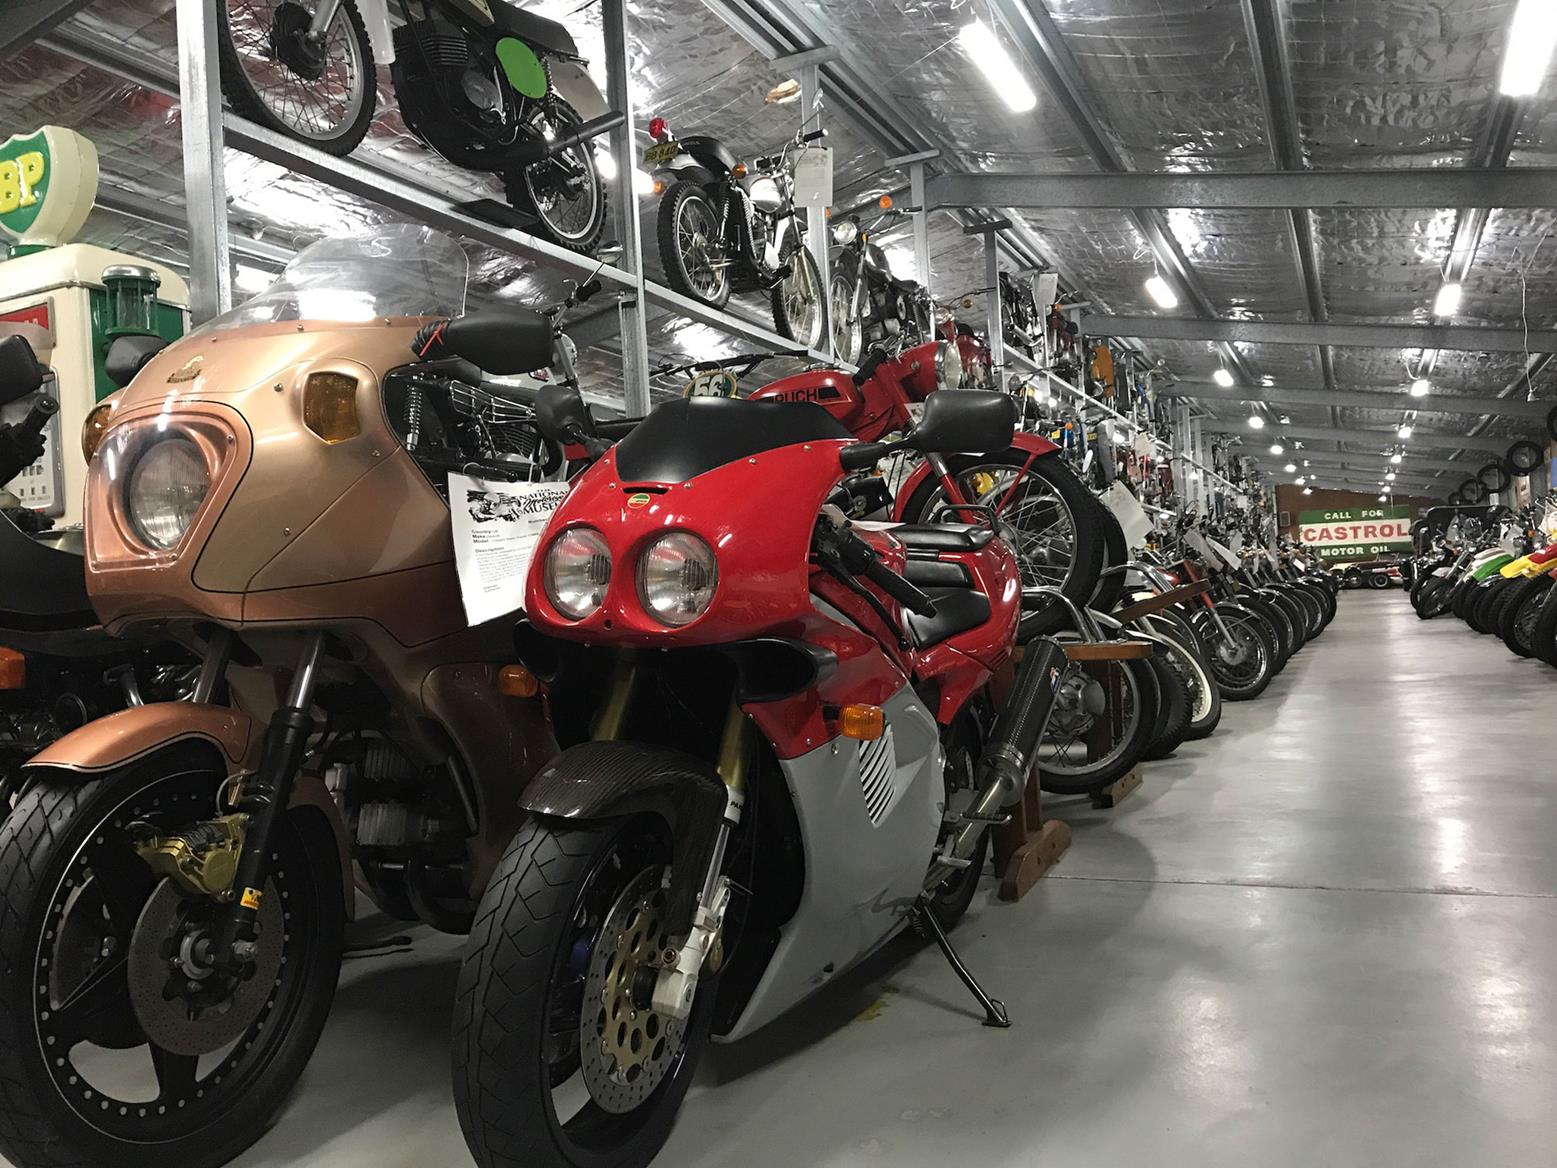 There were some beautiful bikes at the motorcycle museum Simon found in Australia